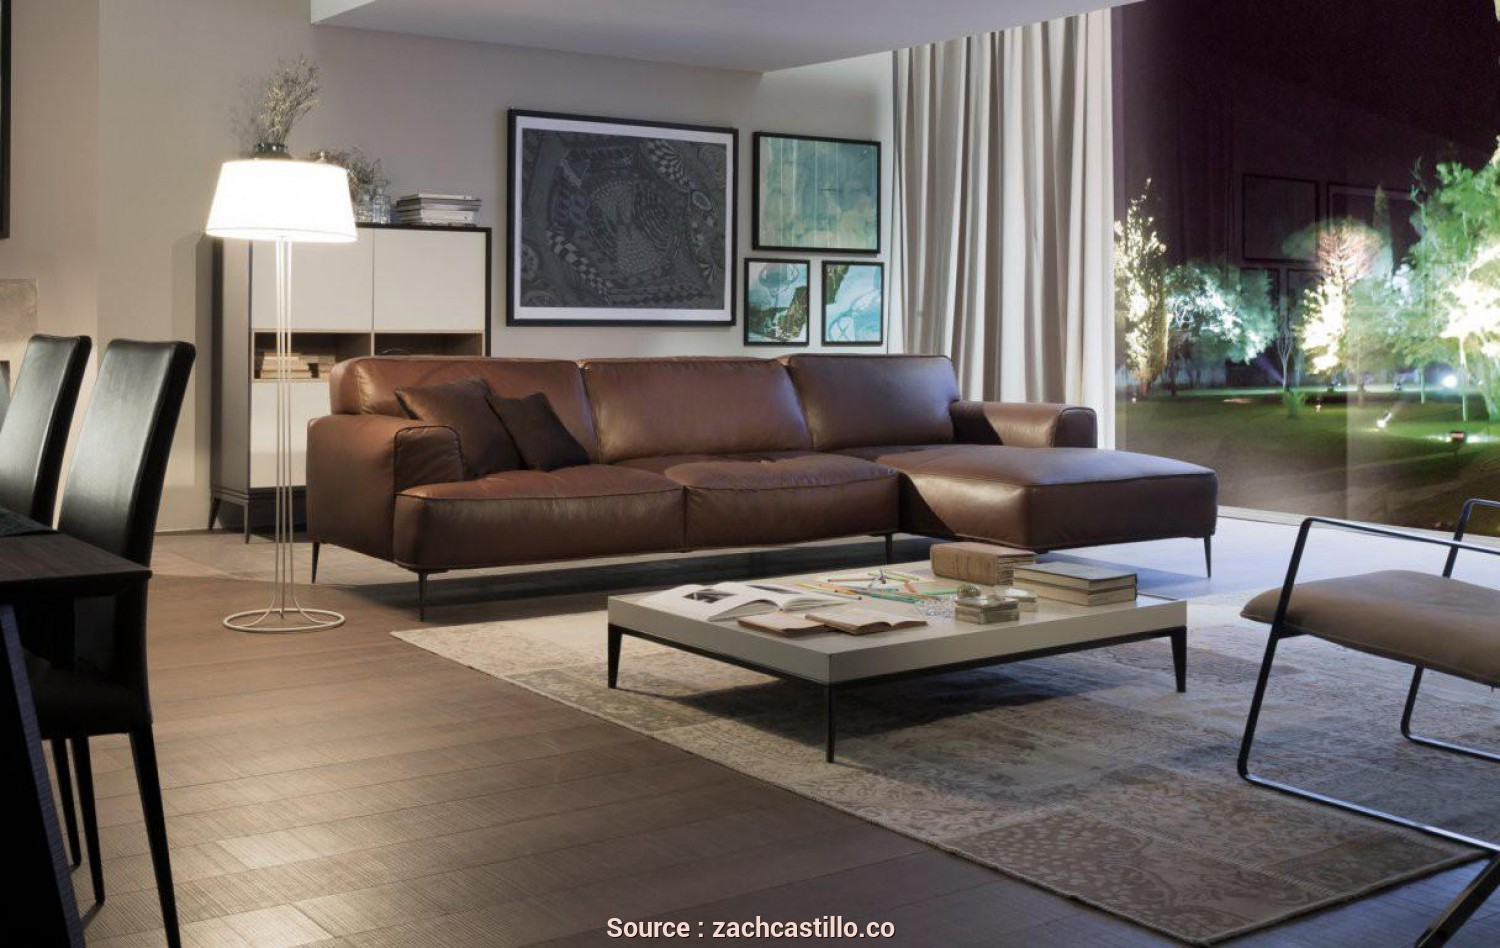 Divano Elise Chateau D'Ax Prezzo, Superiore Best Divani Chateau D Ax Leather Sofa Sofa Gallery Kengire Pertaining To Divani Chateau D With Divani Chatodax